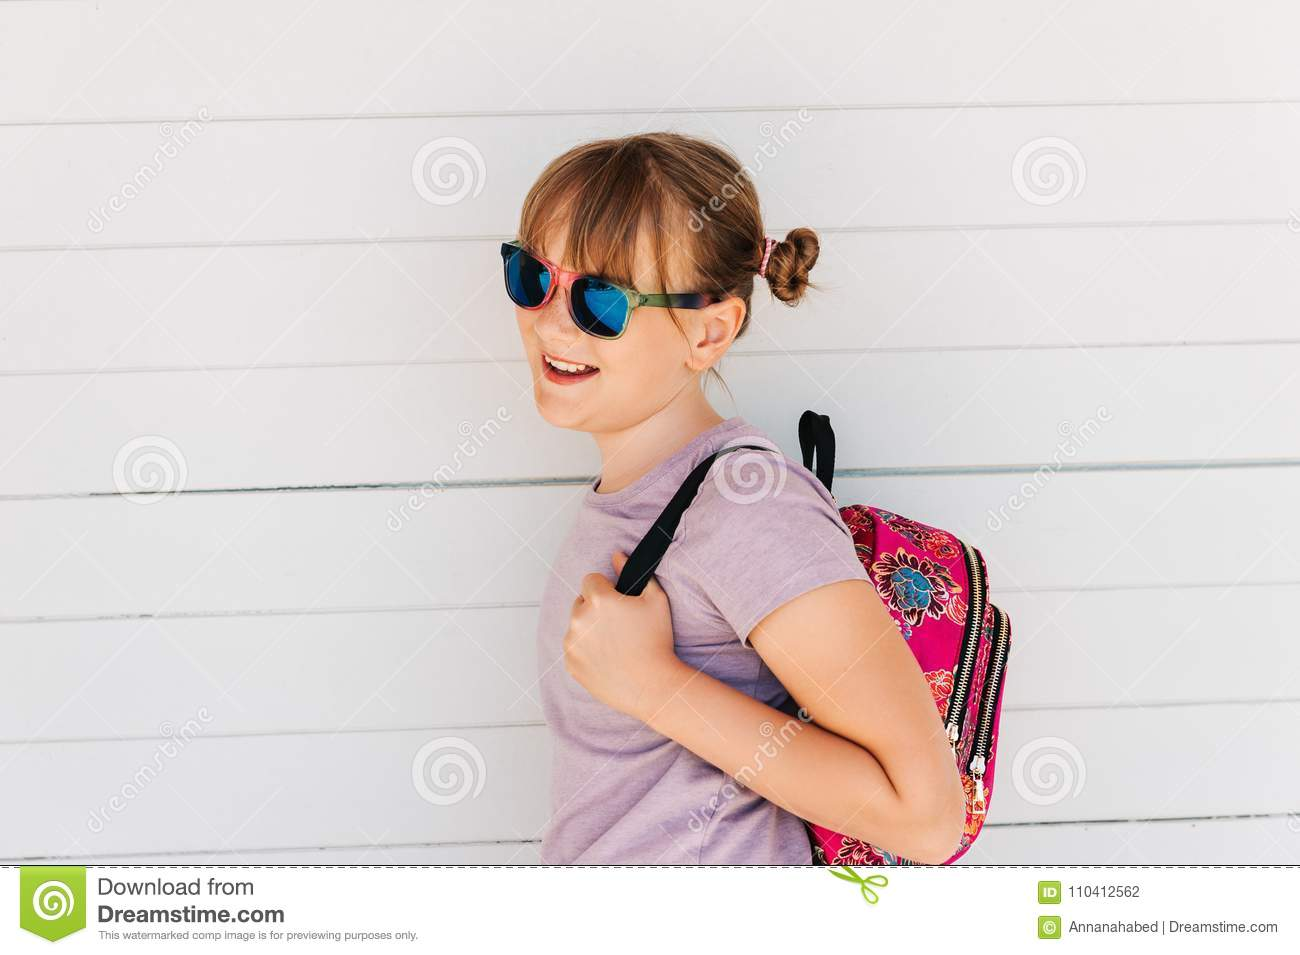 c43a455cae7d Portrait of funny preteen kid girl, wearing sunglasses, holding backpack